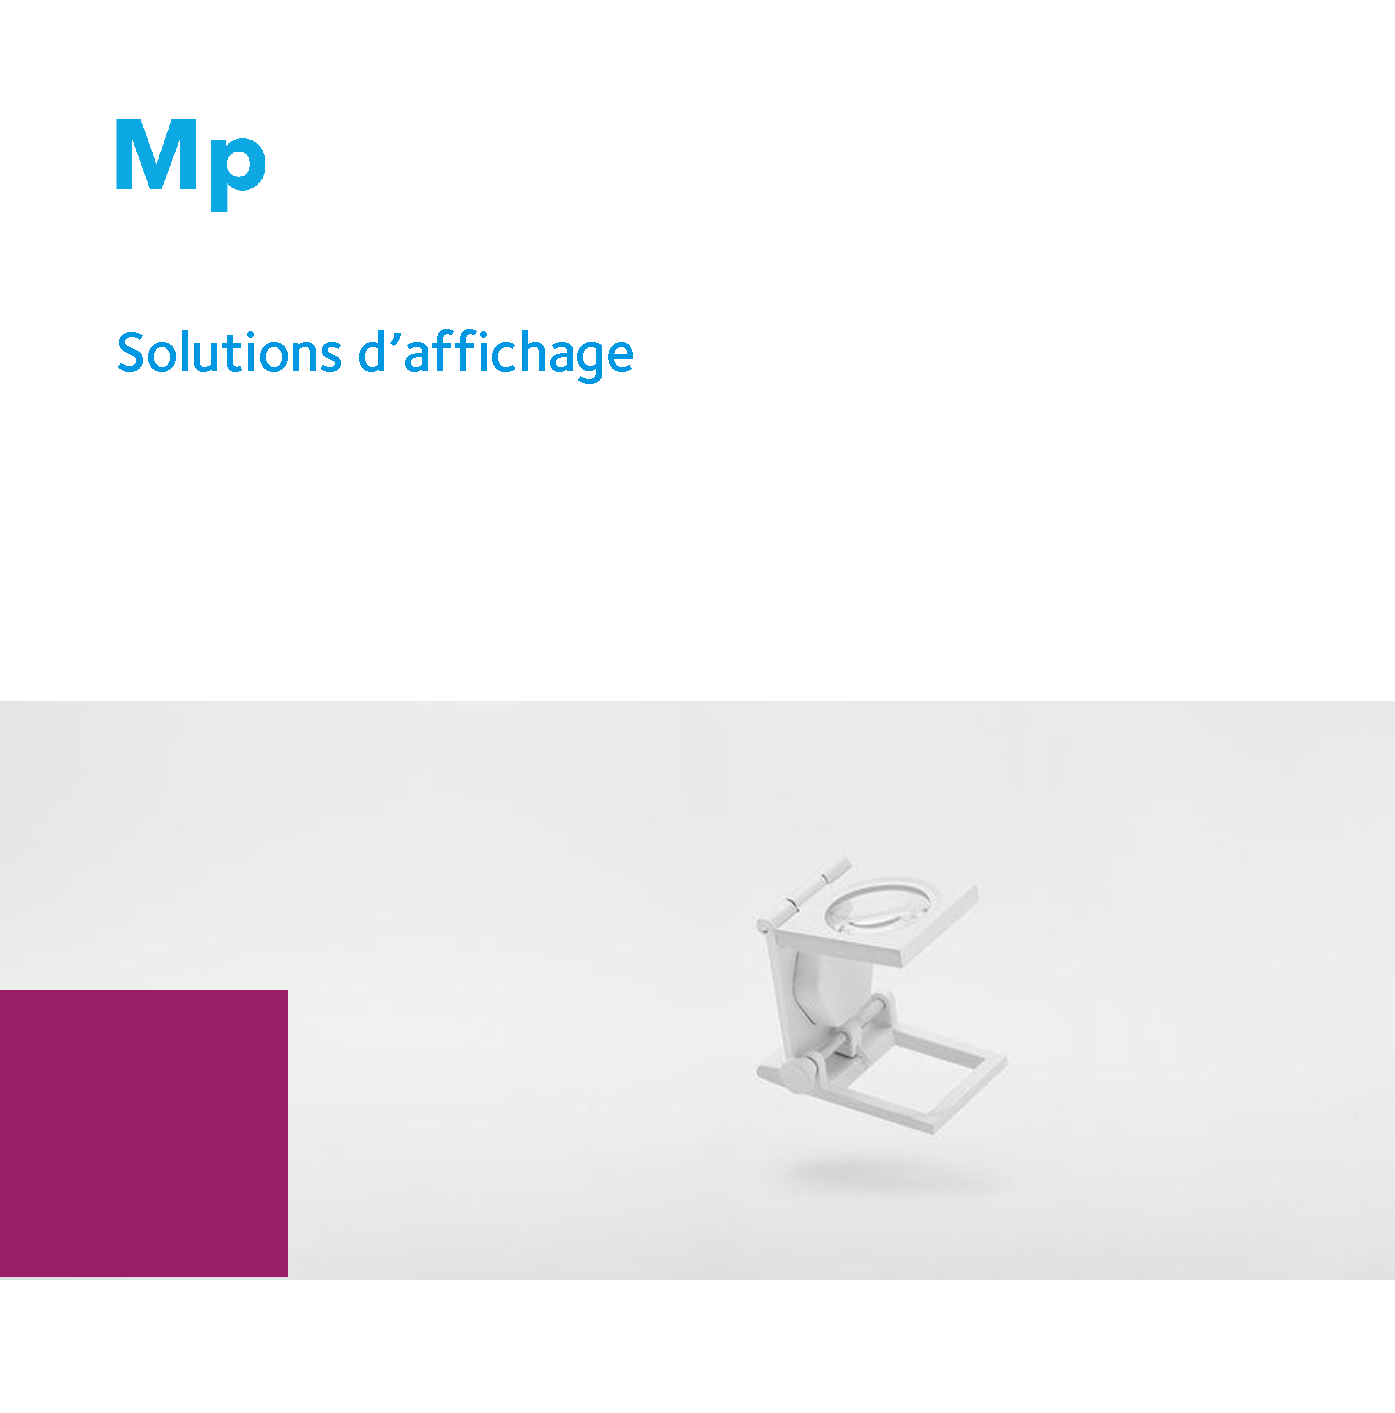 MP Repro solutions affichage Mars2016 1